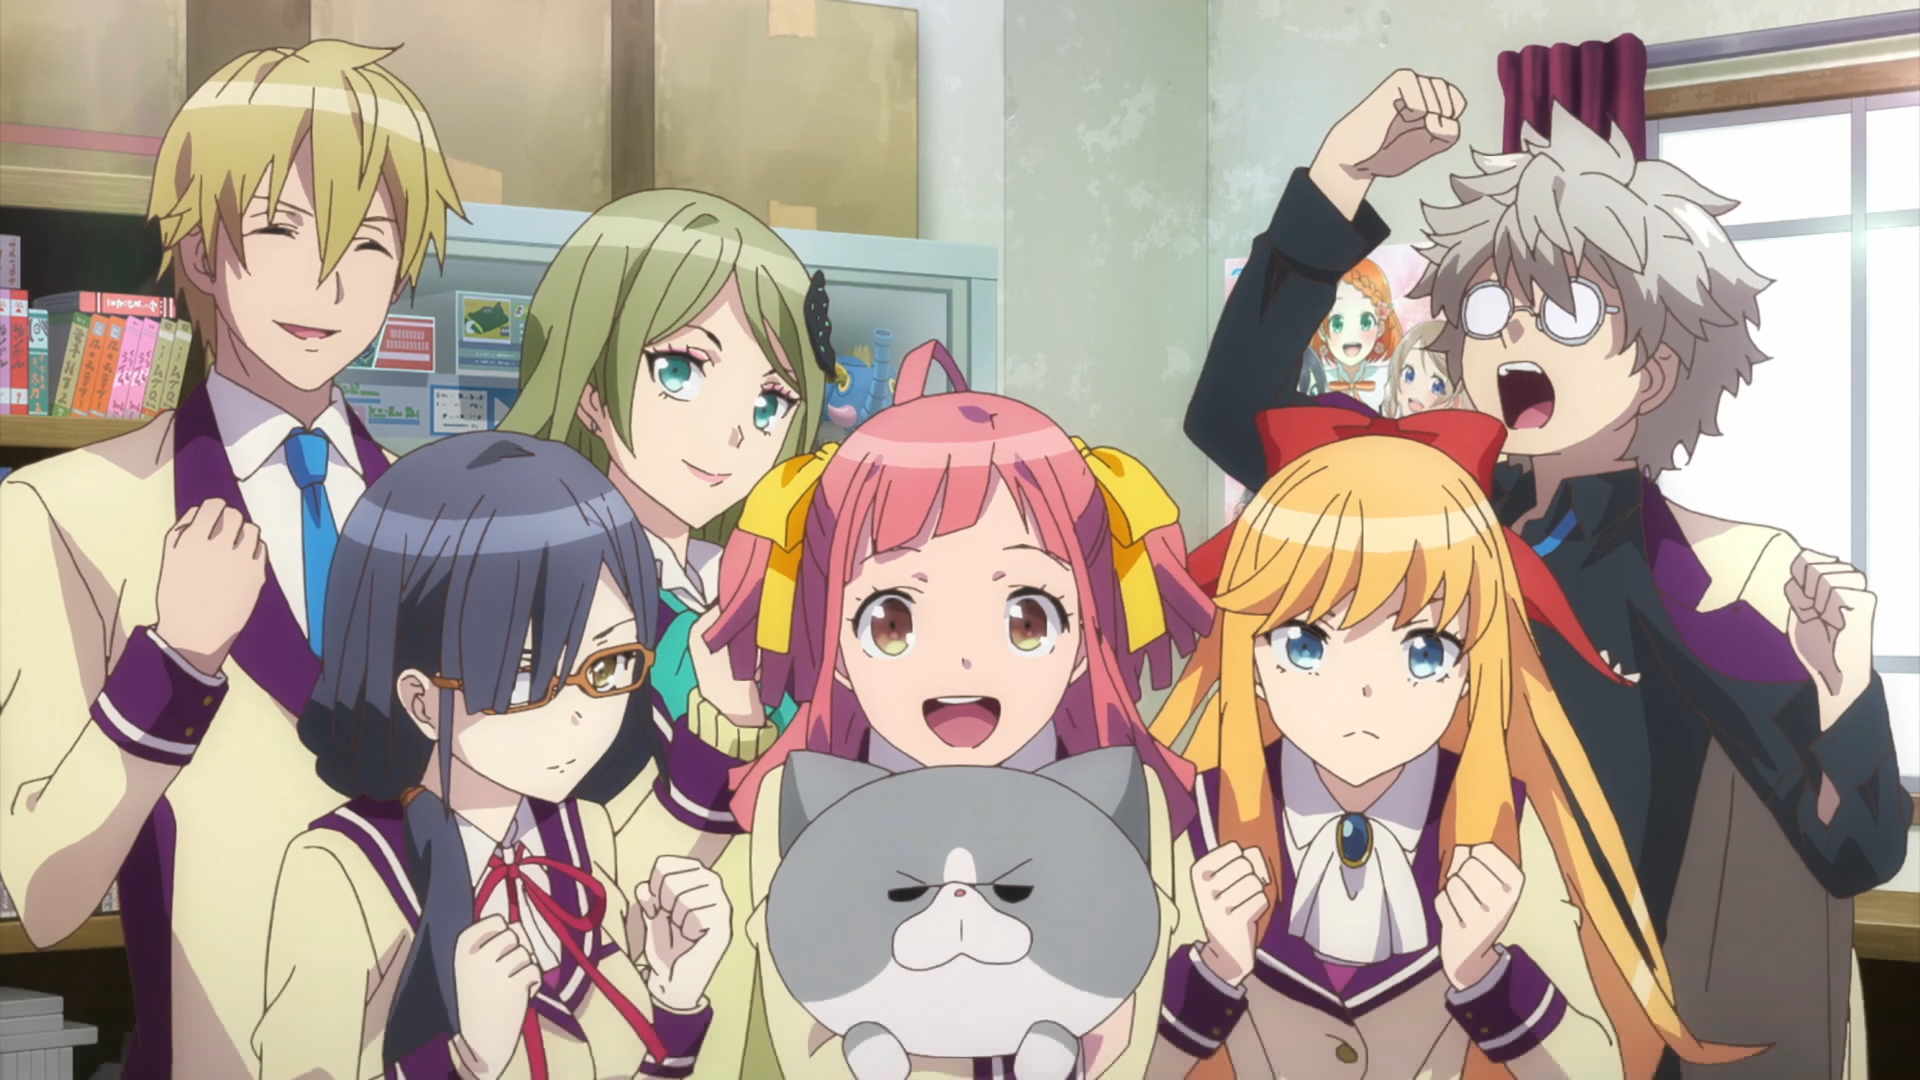 The Sakaneko High School anime club strikes an excited pose in their club room in a scene from the 2017 Anime-Gataris TV anime.